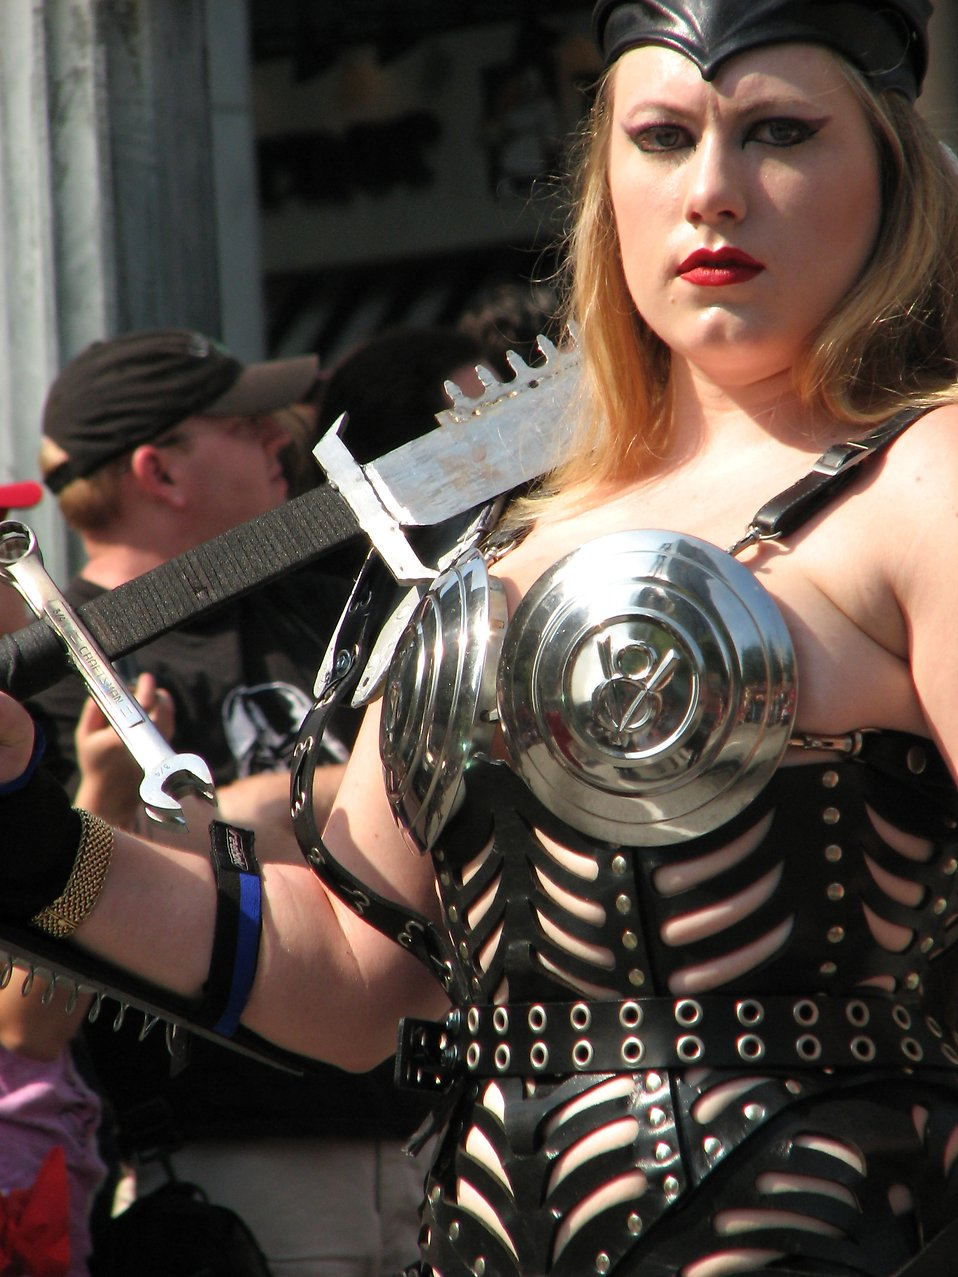 Tall blonde in barbarian costume in 2008 Dragoncon parade : Free Stock Photo